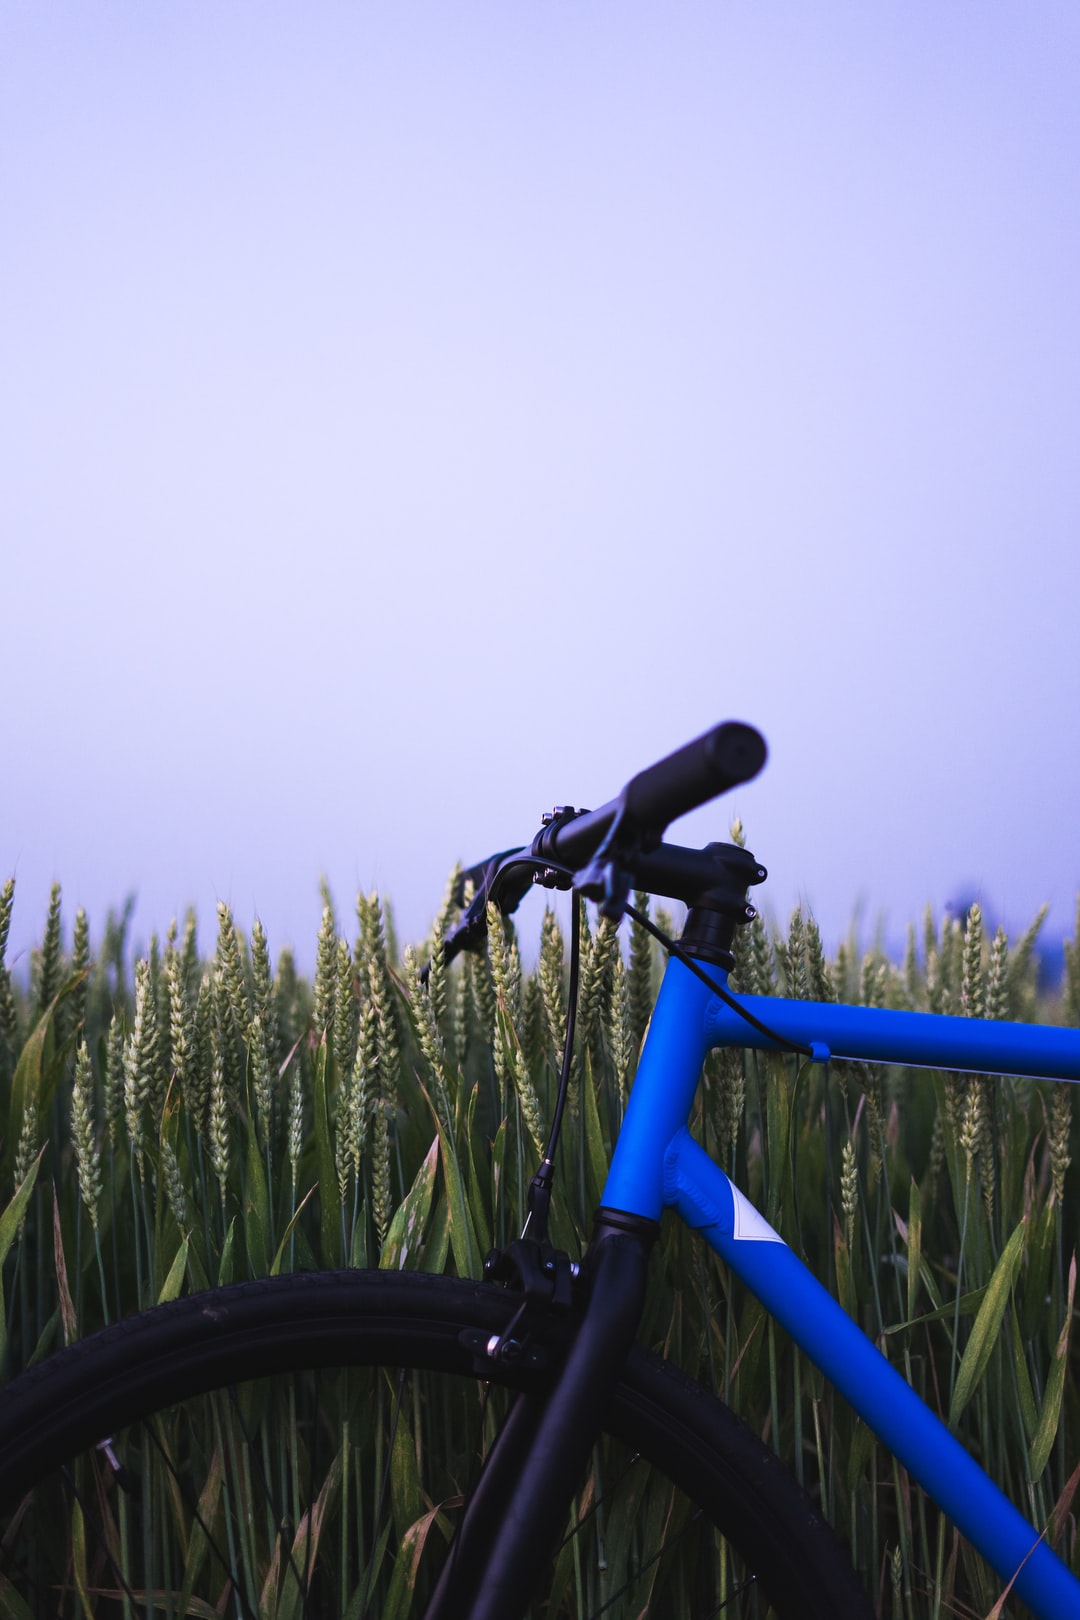 Samebike LO26 48V 10.4Ah Review and Experience